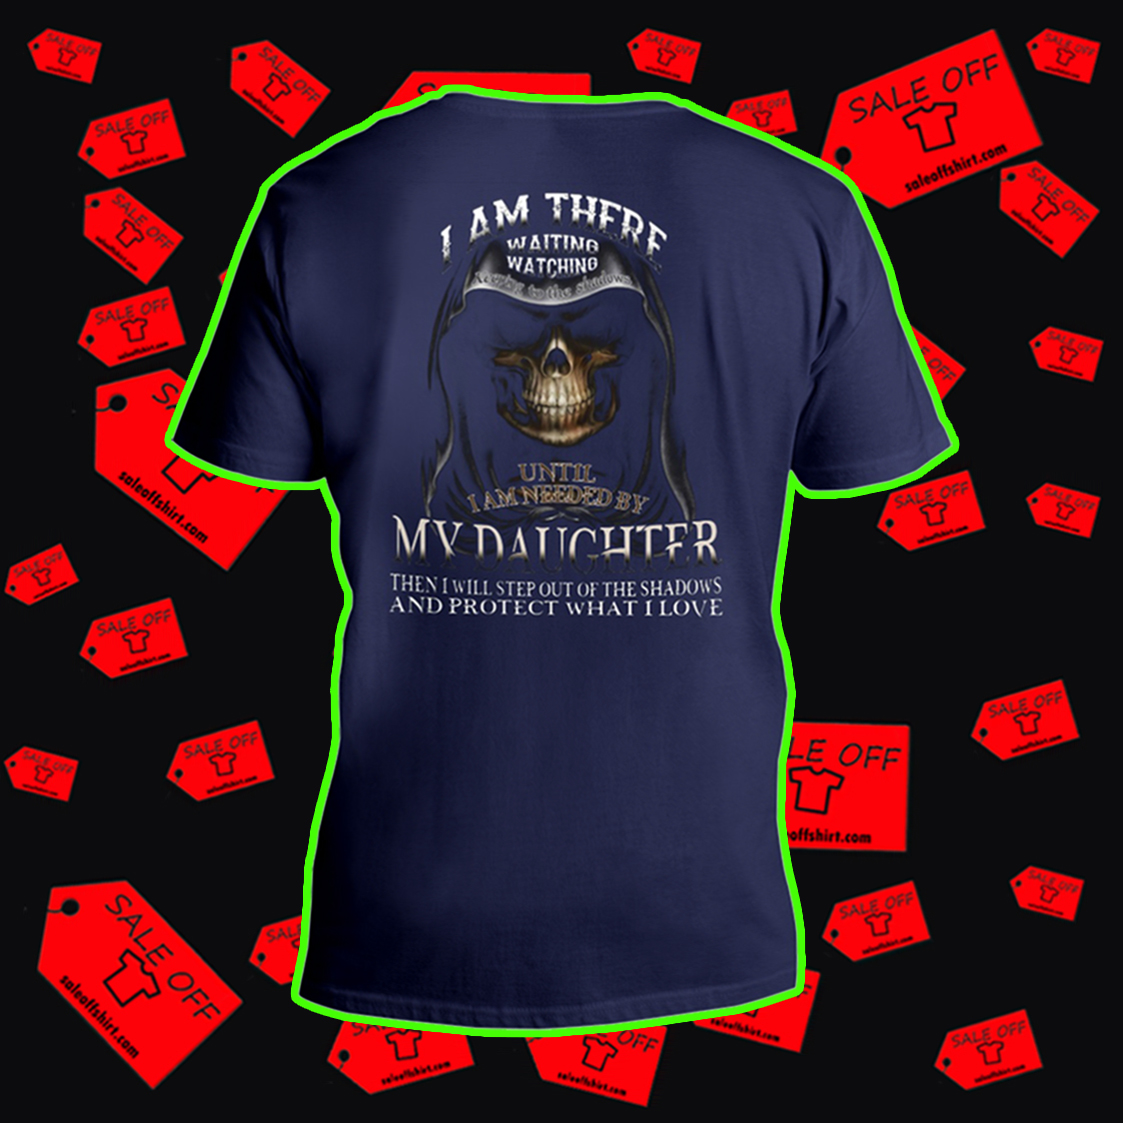 I am there waiting watching keeping to the shadows until I'm needed by my daughter v-neck